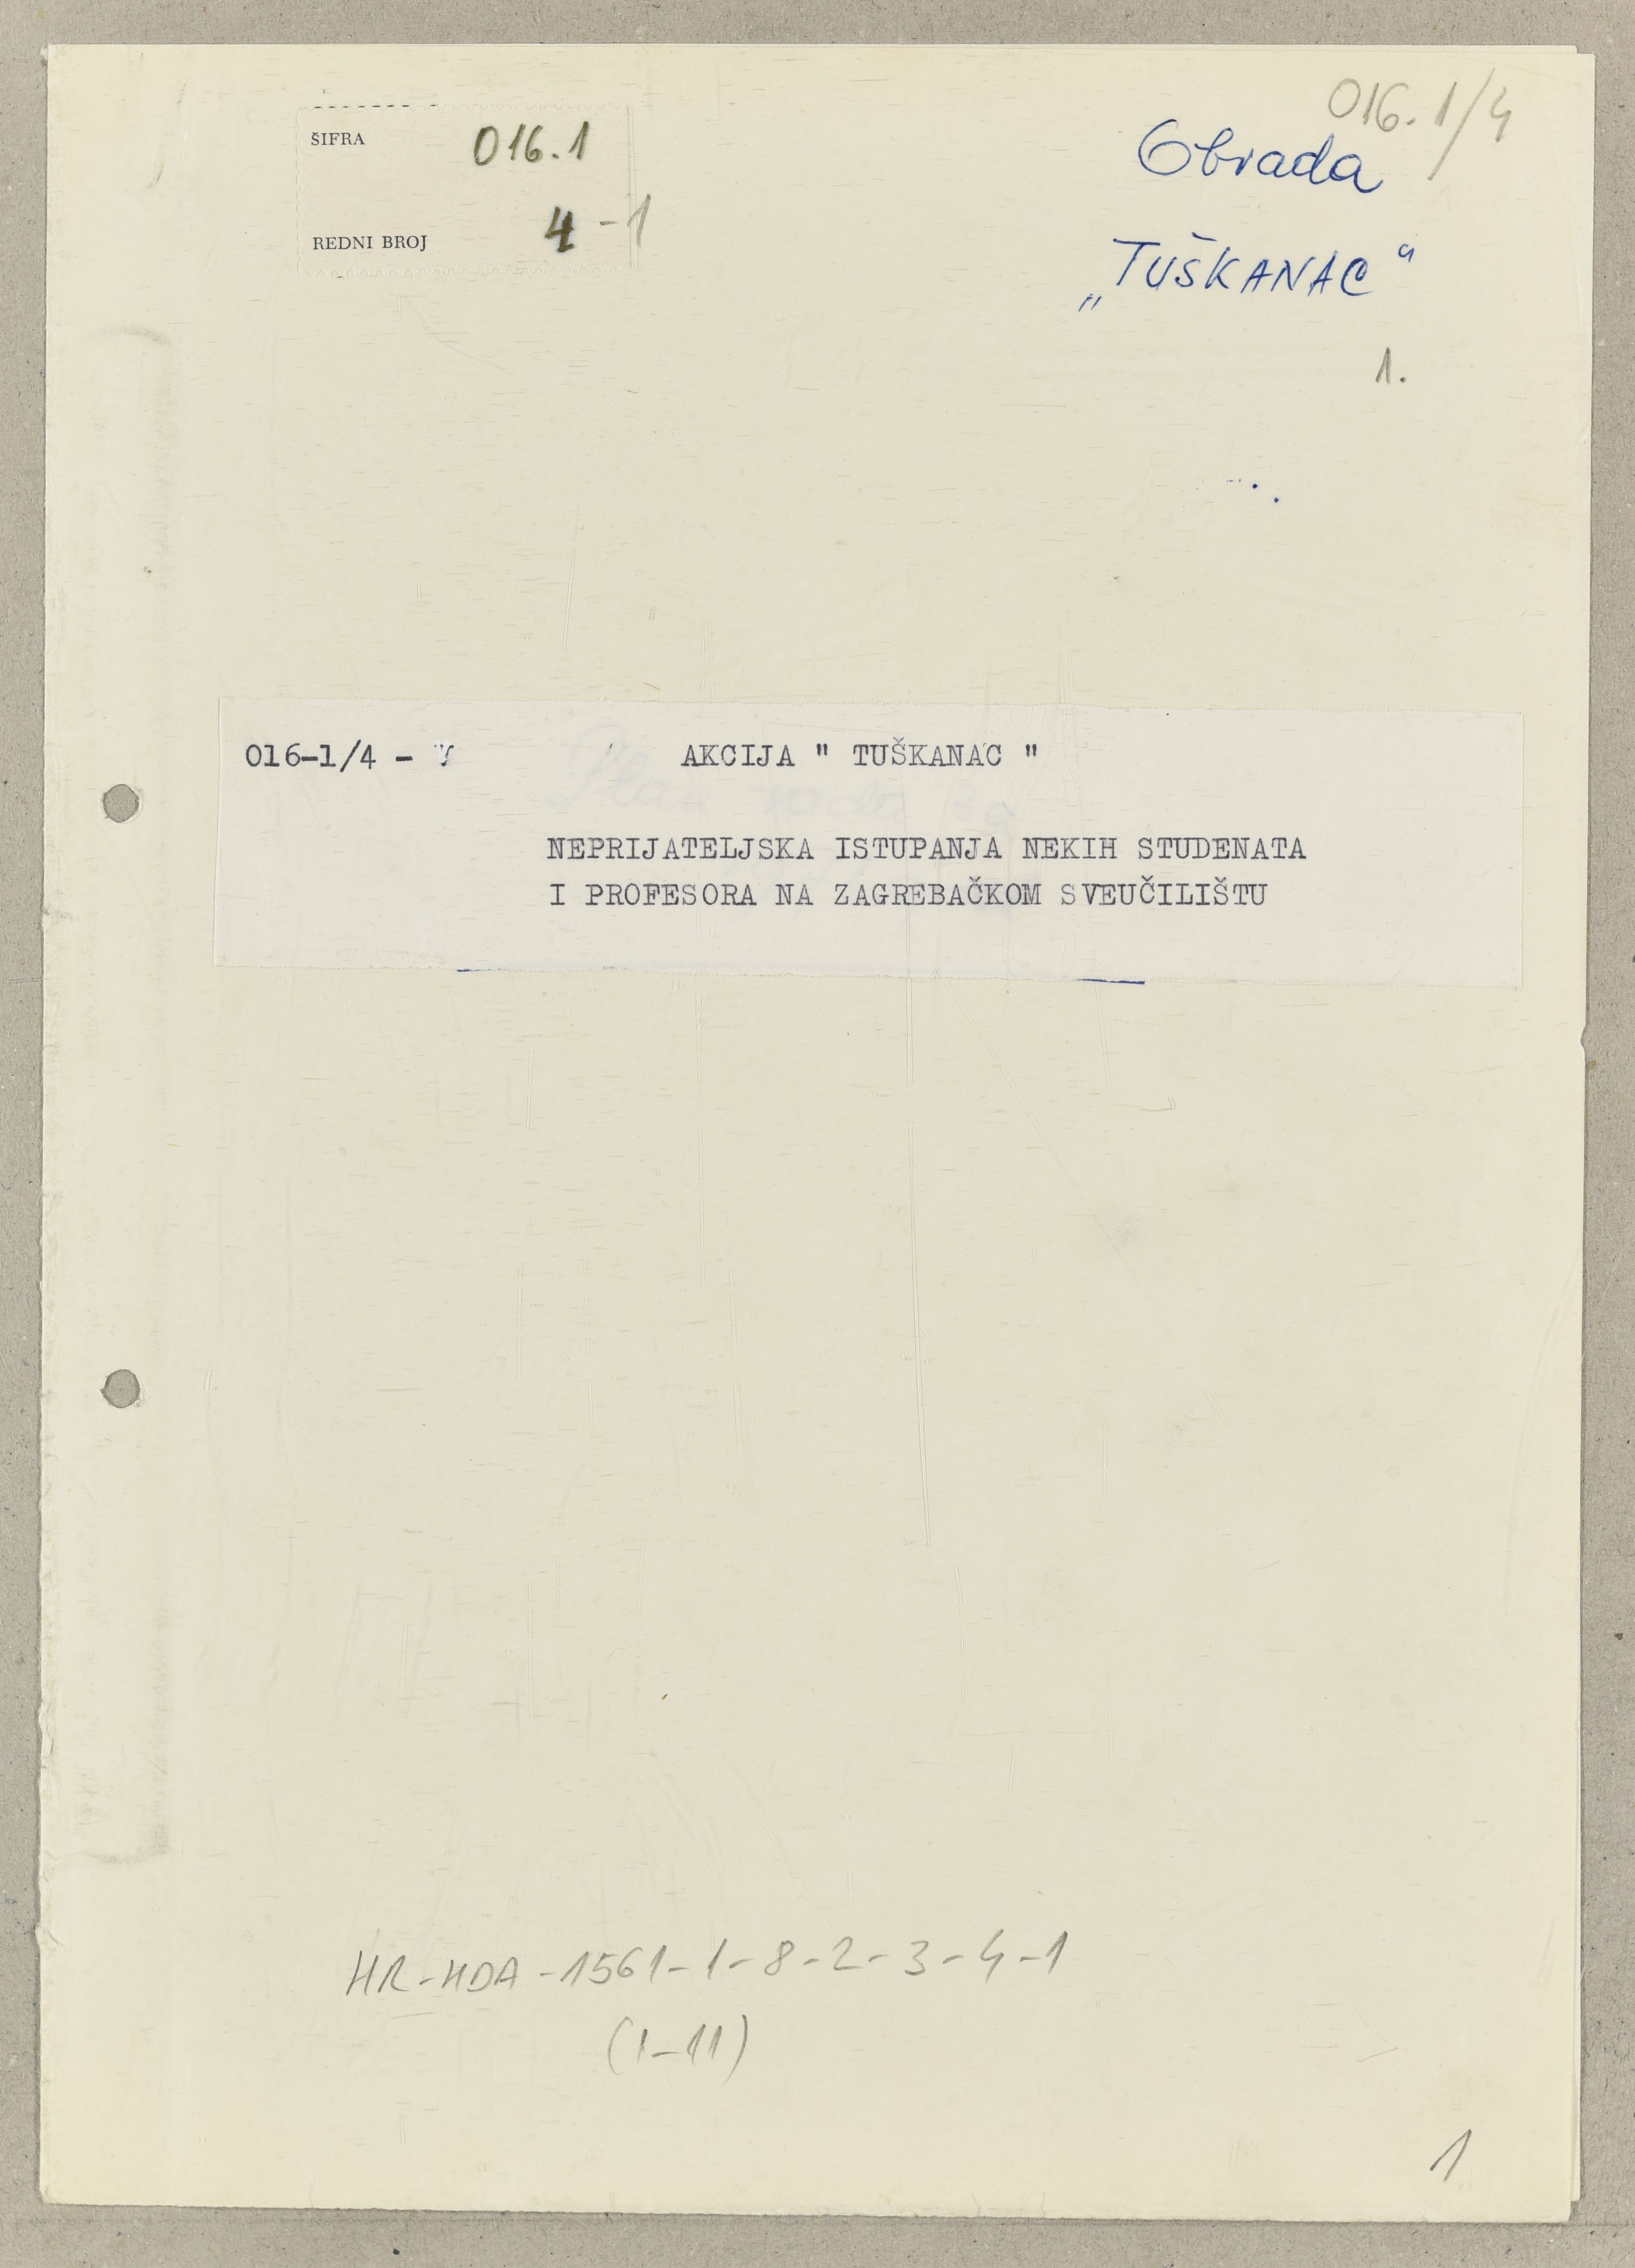 Title page of the Croatian State Security Service's plan for operational measures against students and professors at the University of Zagreb during 1971 (2018-05-29).